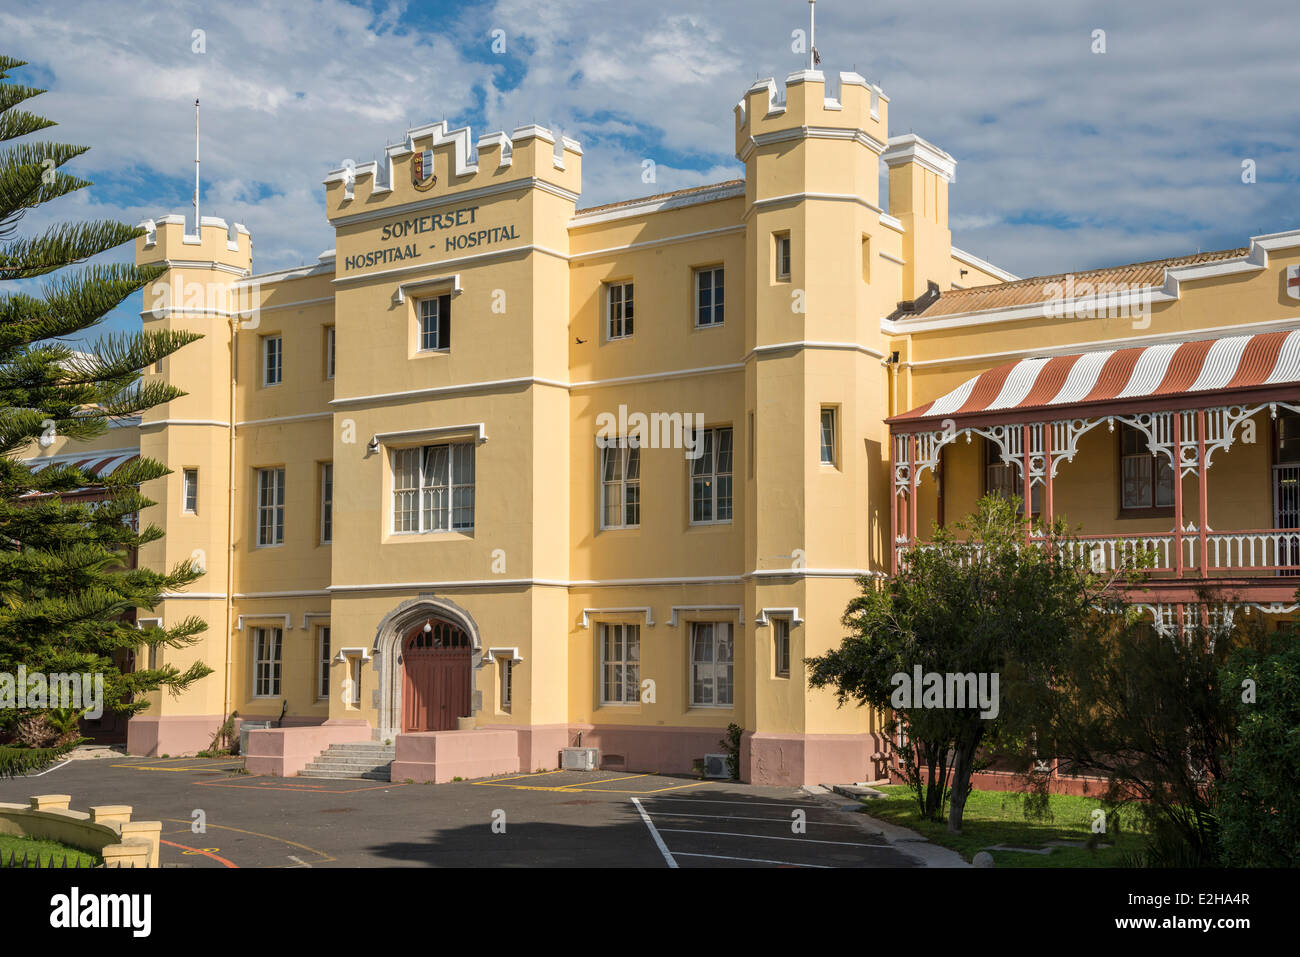 Somerset Hospital, Cape Town, Western Cape, South Africa Stock Photo